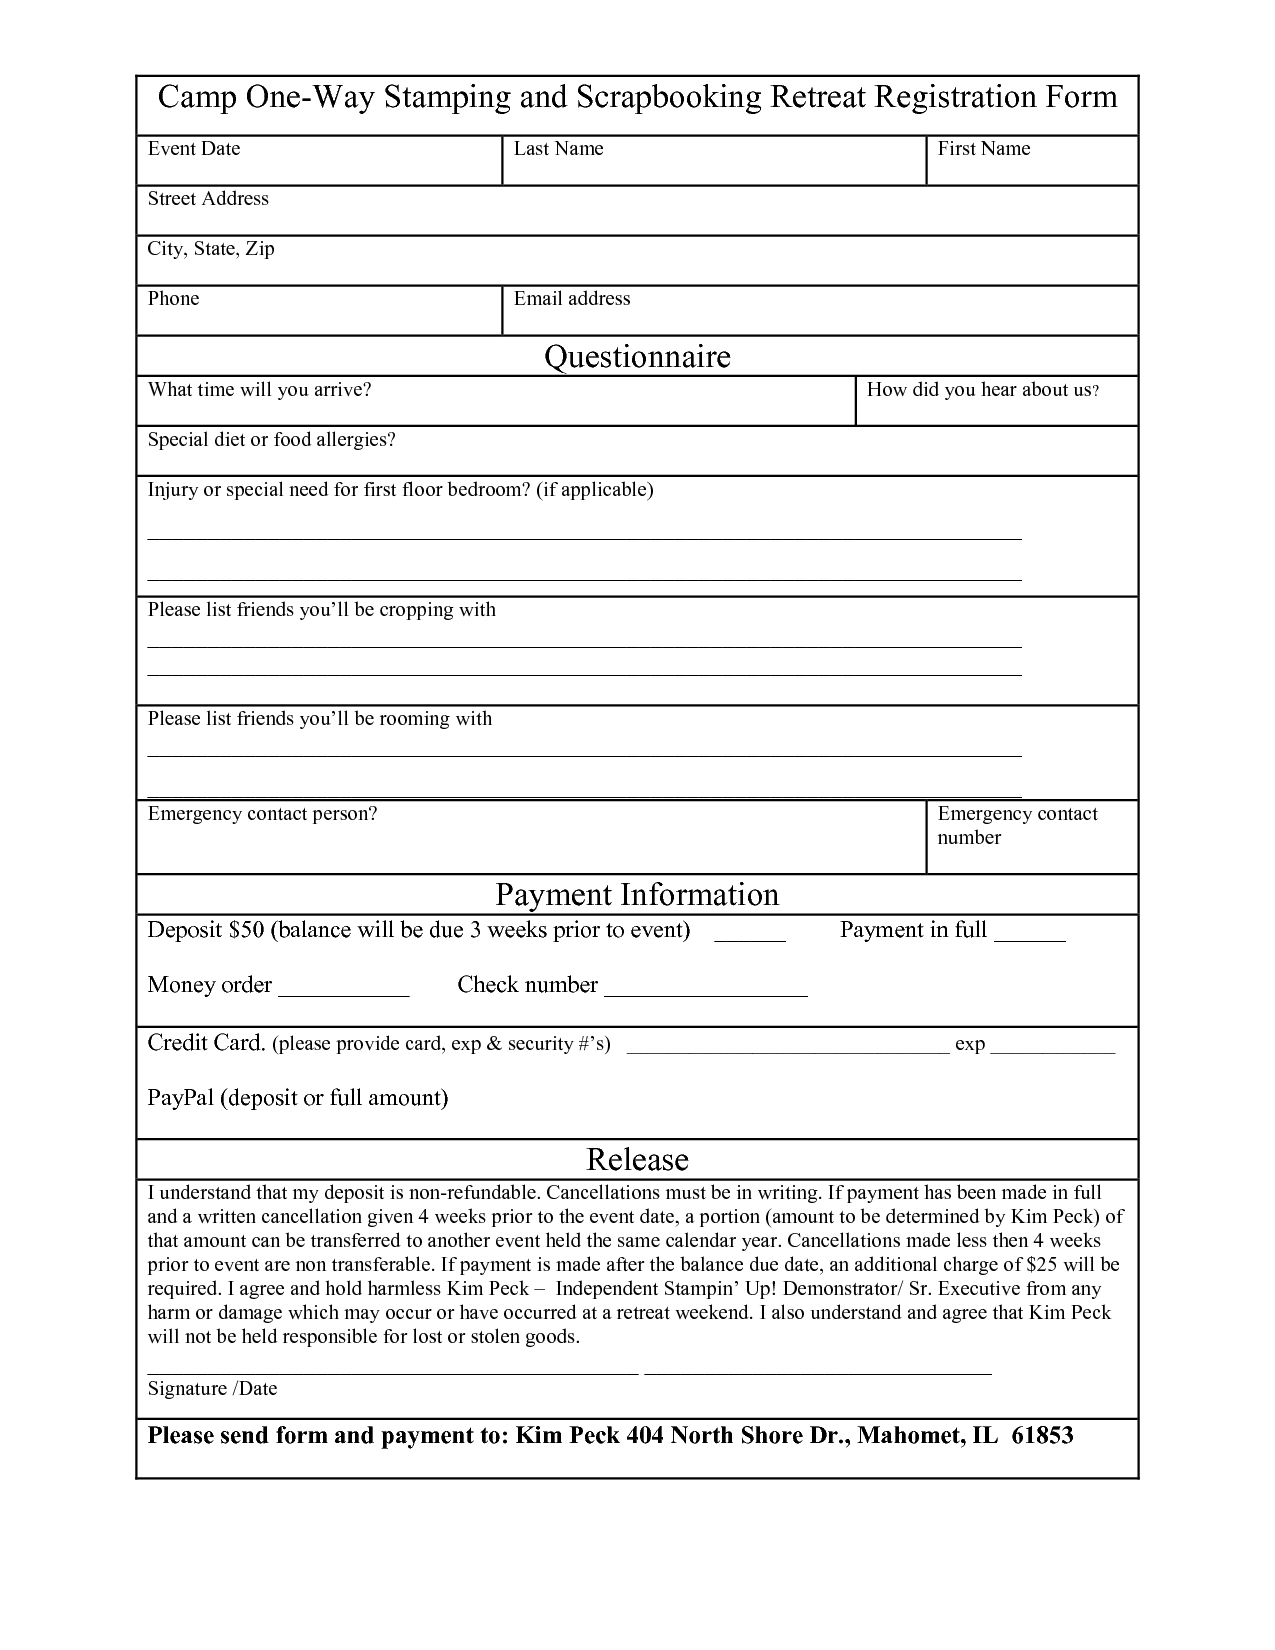 Event Registration Form Late Word WordPress Printable Free